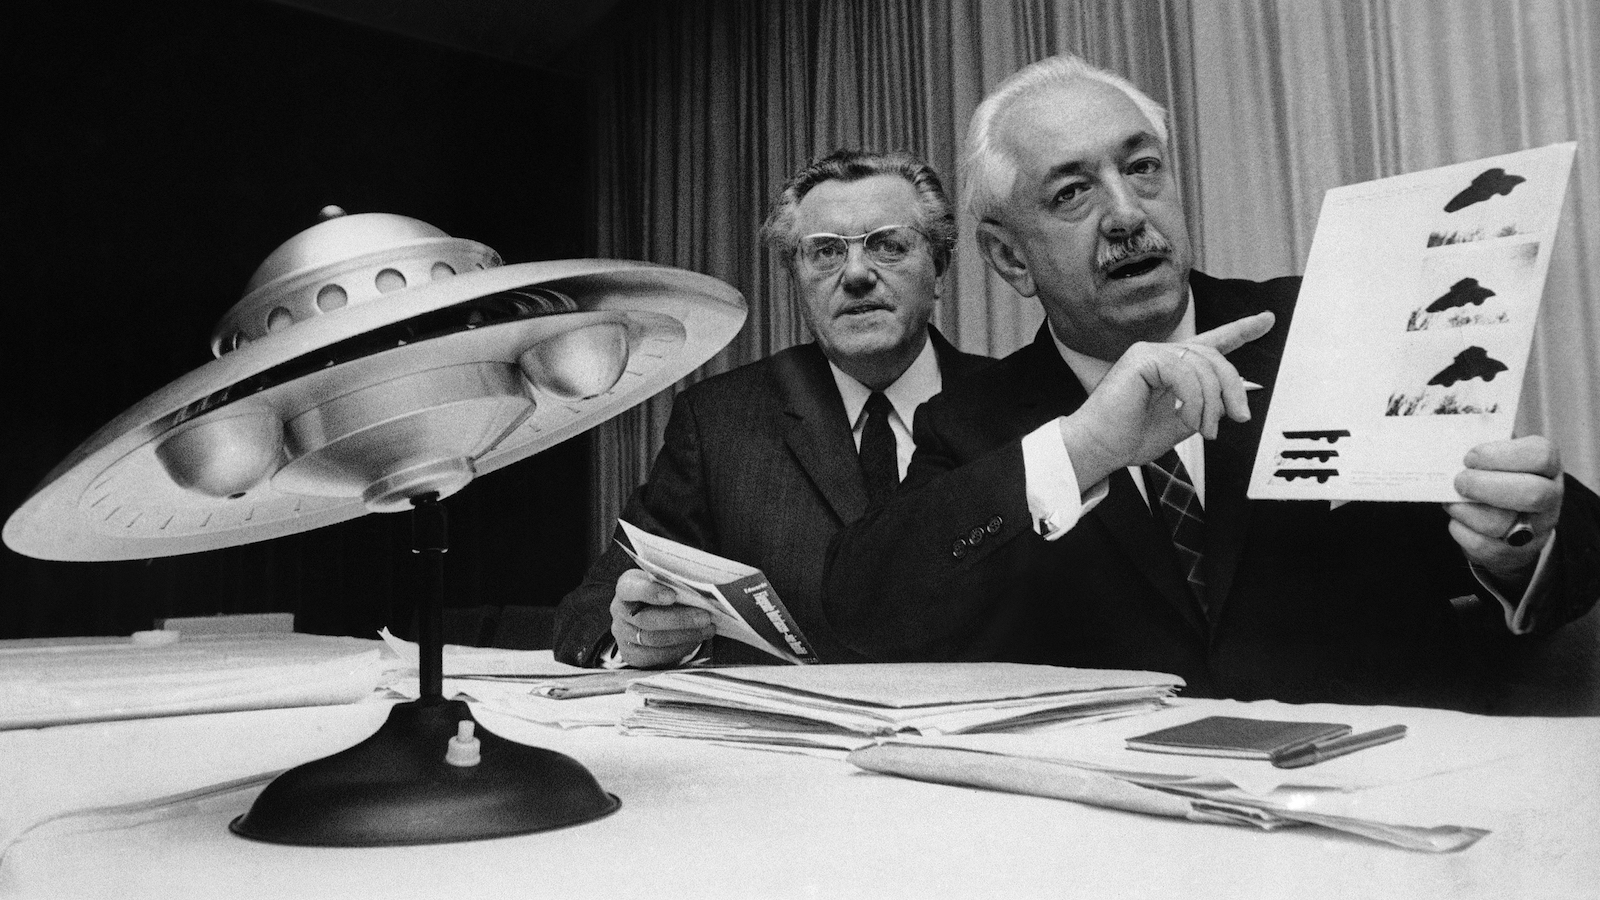 World reception center for official visitors from outer space was proposed by an American specialist on unidentified flying objects (UFOs). Hungarian-born Colman von Keviczky, a former United Nations official, right, and Karl L. Viet, the president of the German branch of the UFO study society, are at a news conference on the international conference of UFO-students, Oct. 31, 1967 in Mainz, Germany. At foreground is a model of a UFO which doubles as bedside lamp.  (AP Photo/Kurt Strumpf)